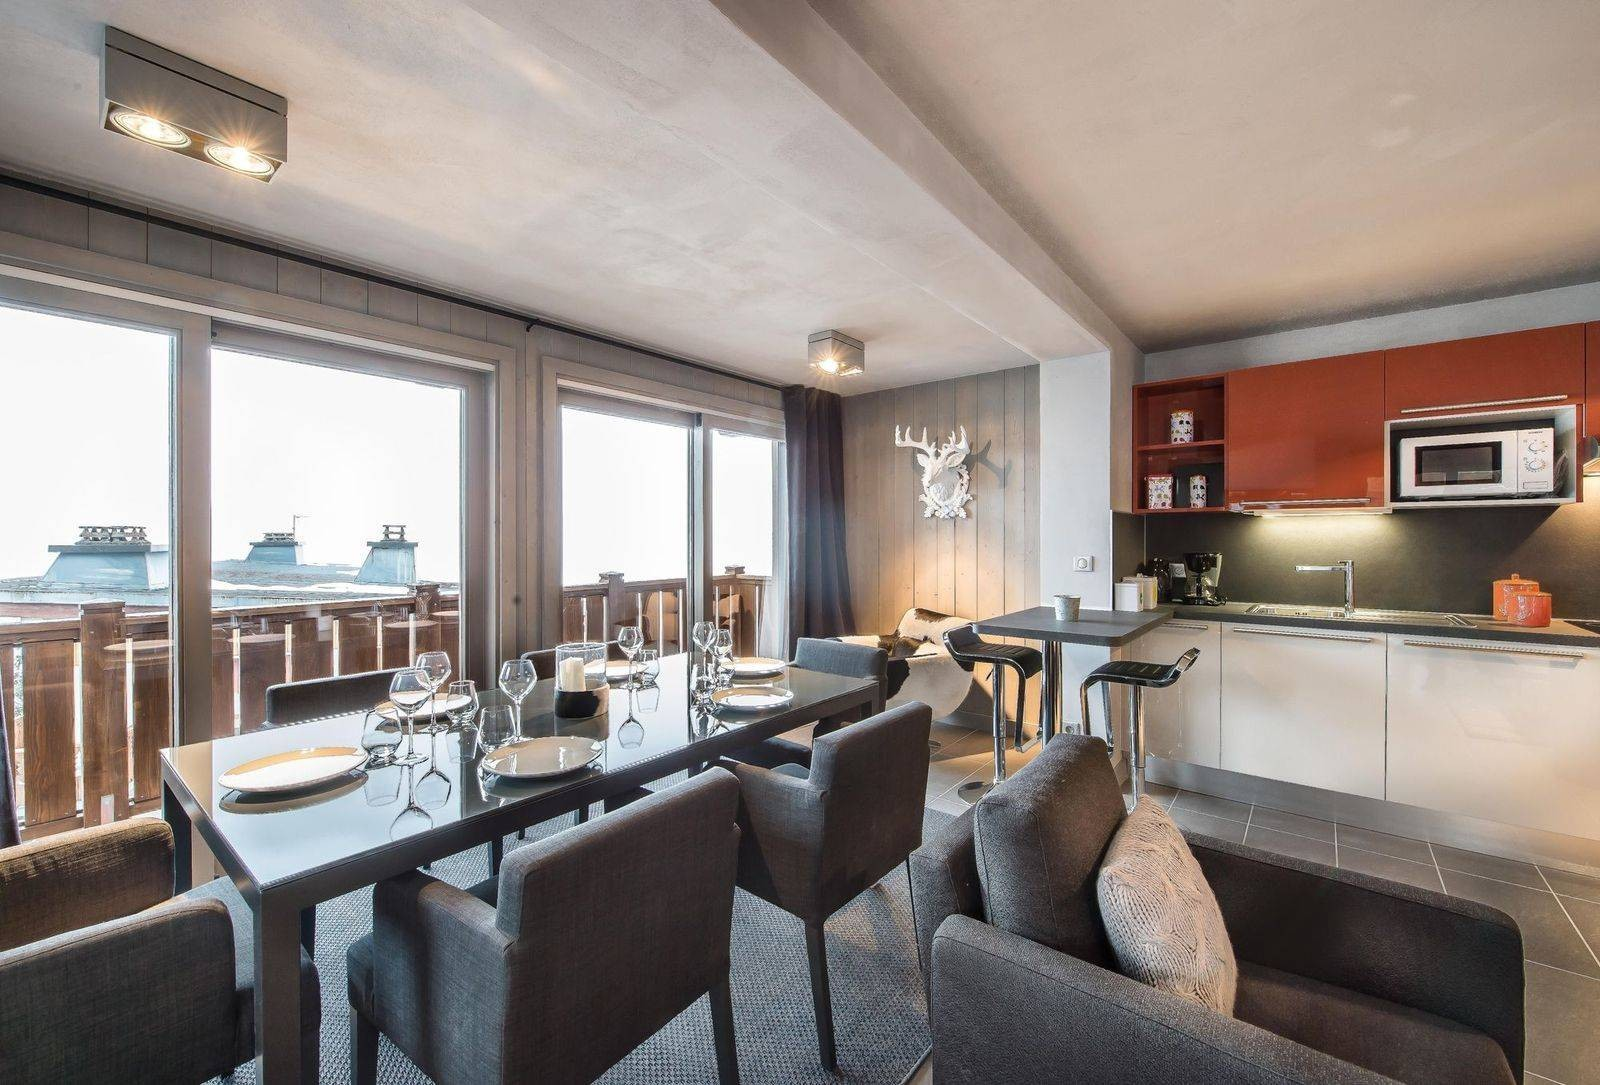 Courchevel 1650 Location Appartement Luxe Simeline Salle A Manger